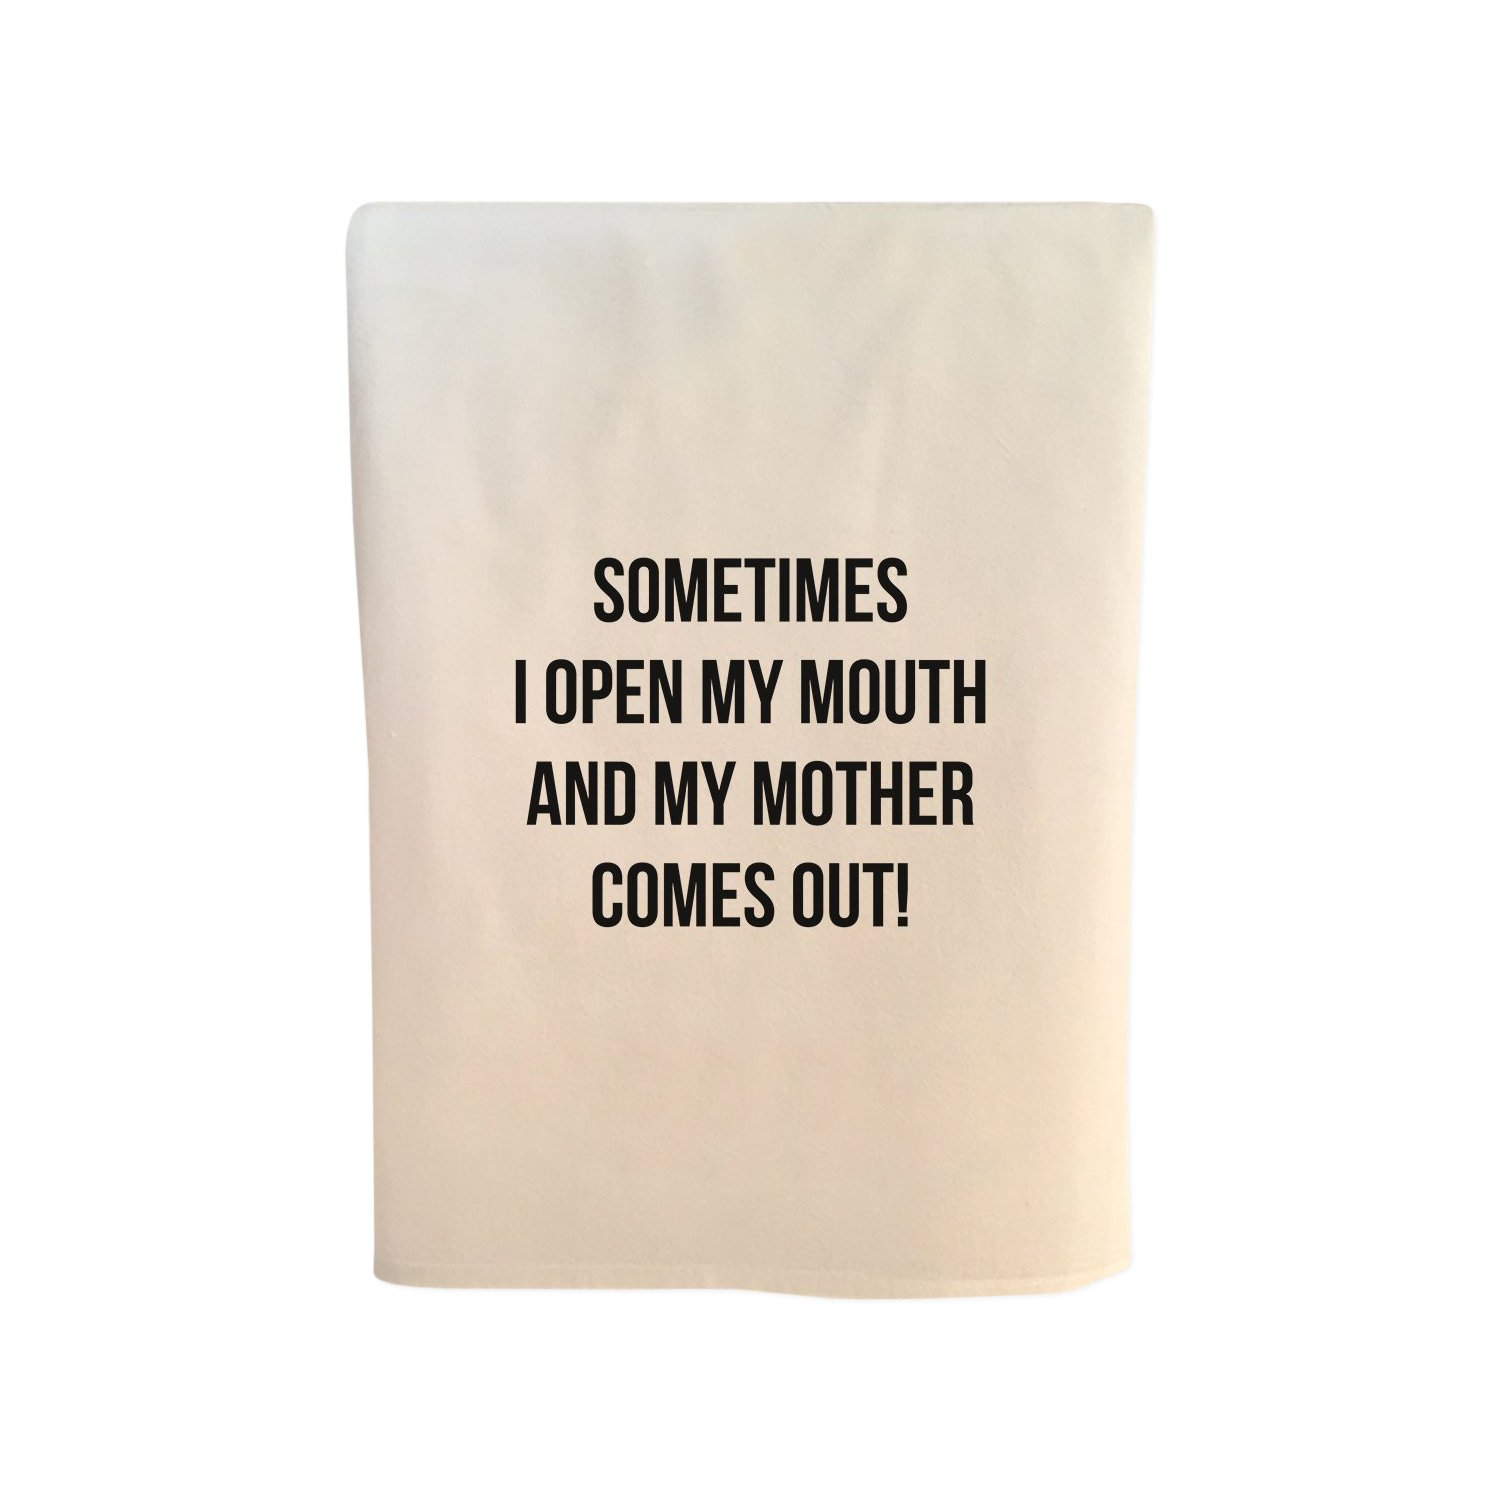 Wildwood Landing Sometimes Open My Mouth Mom Comes Out 30 x 30 Inch Cotton Tea Towel